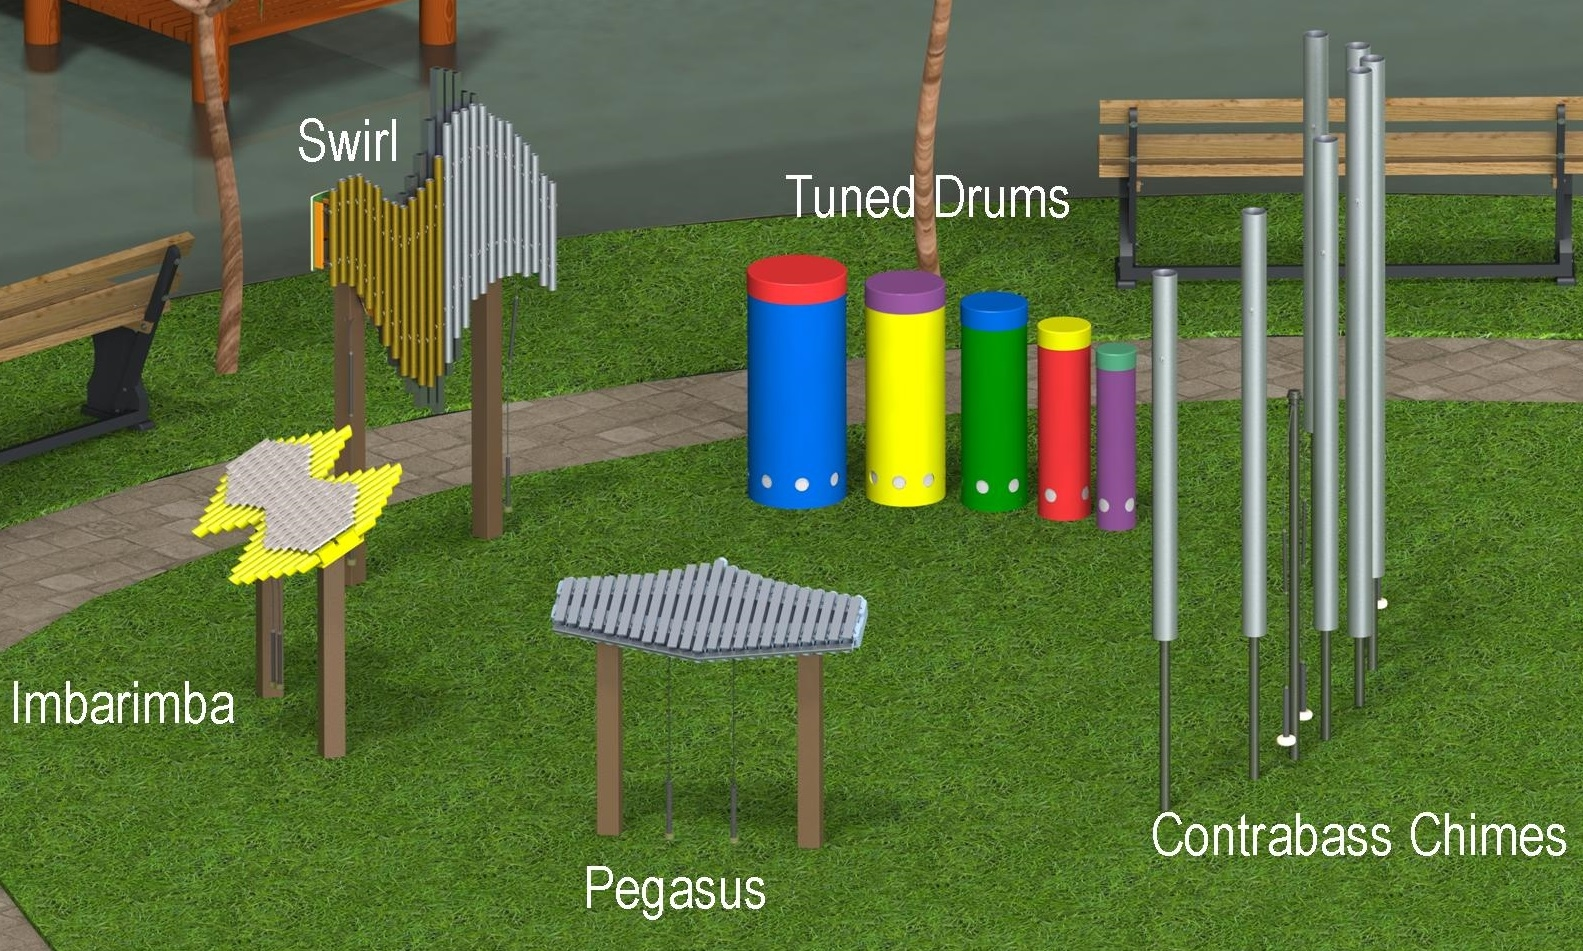 Freenotes Harmony Park Instruments Are Percussion Played With Mallets They Incorporate Simplified Musical Principles Ensuring Each Player S